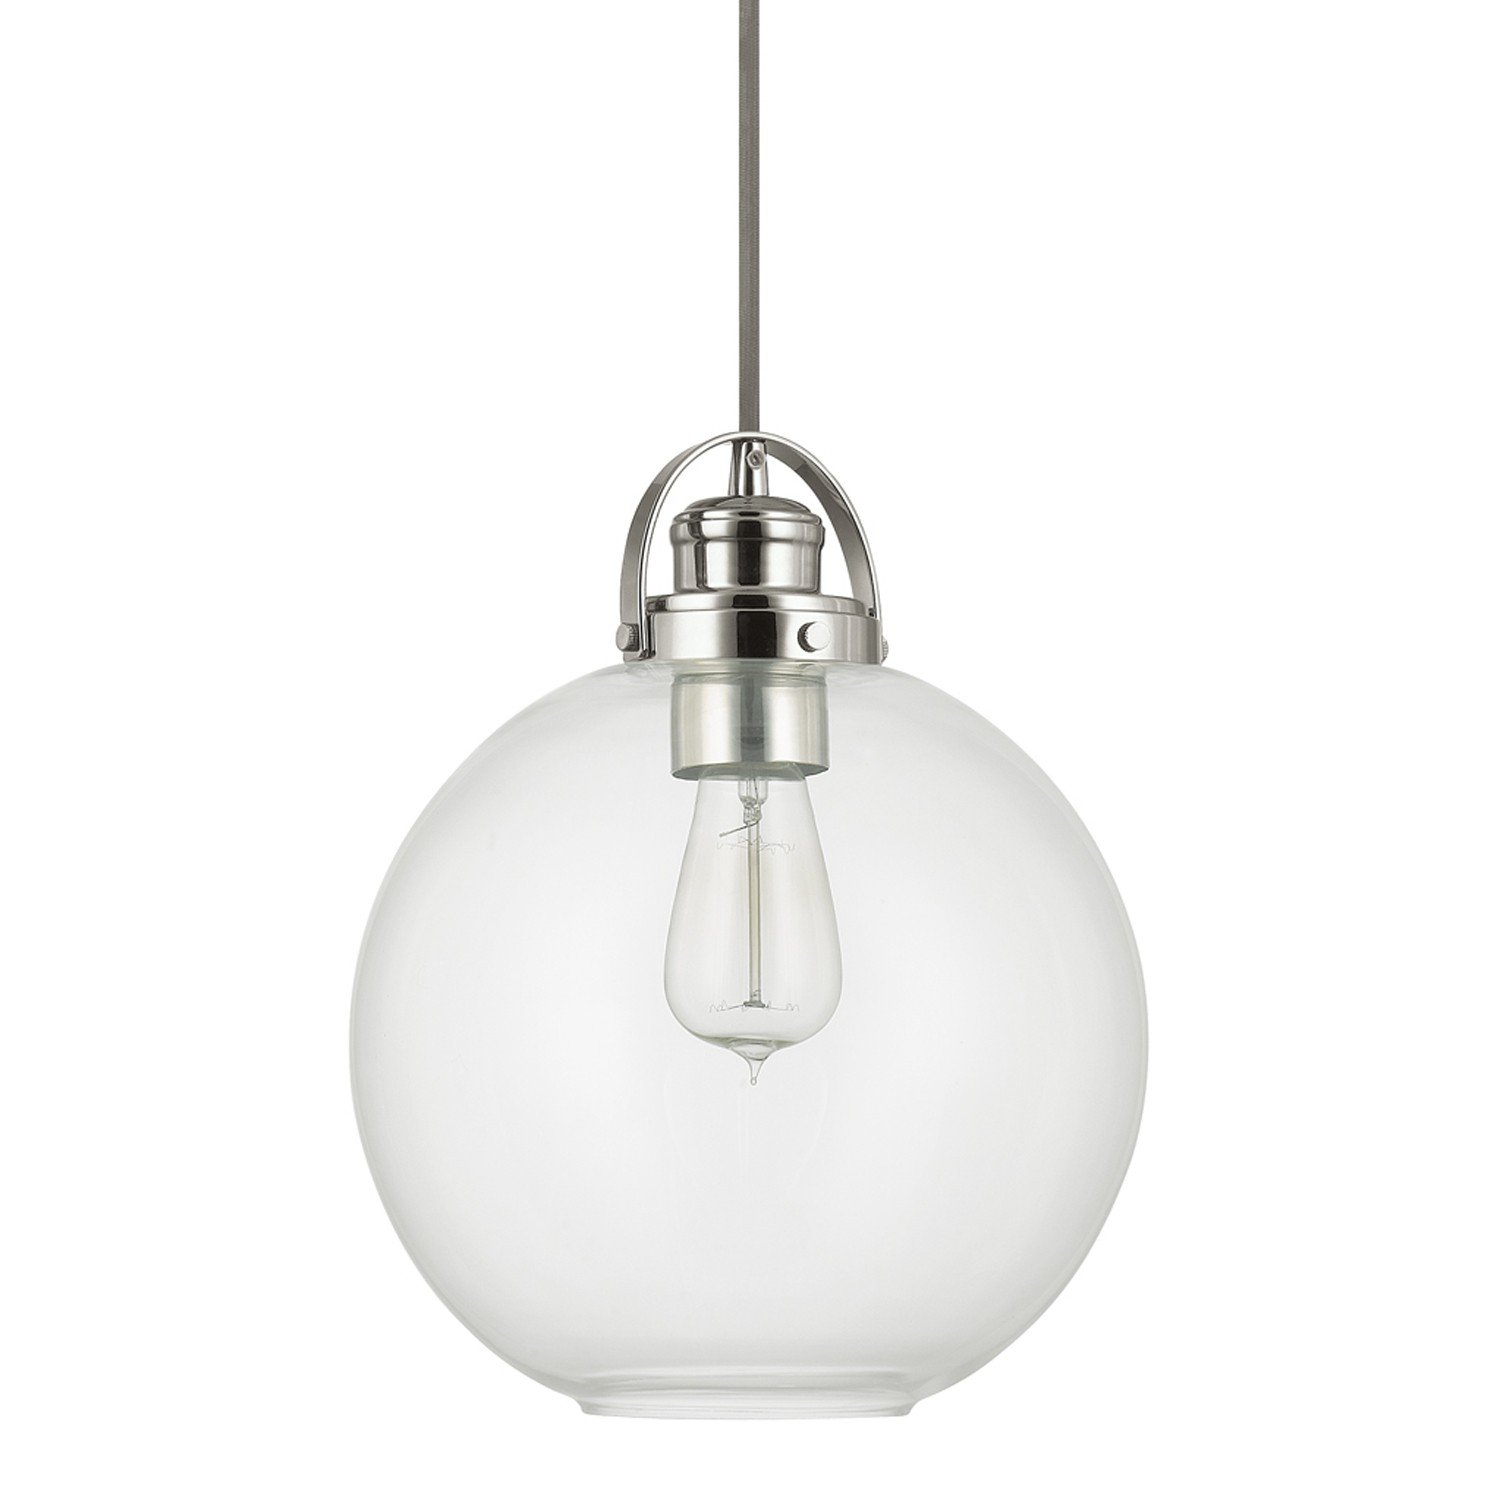 Betsy 1 Light Single Globe Pendant & Reviews | Joss & Main With Regard To Cayden 1 Light Single Globe Pendants (View 2 of 30)